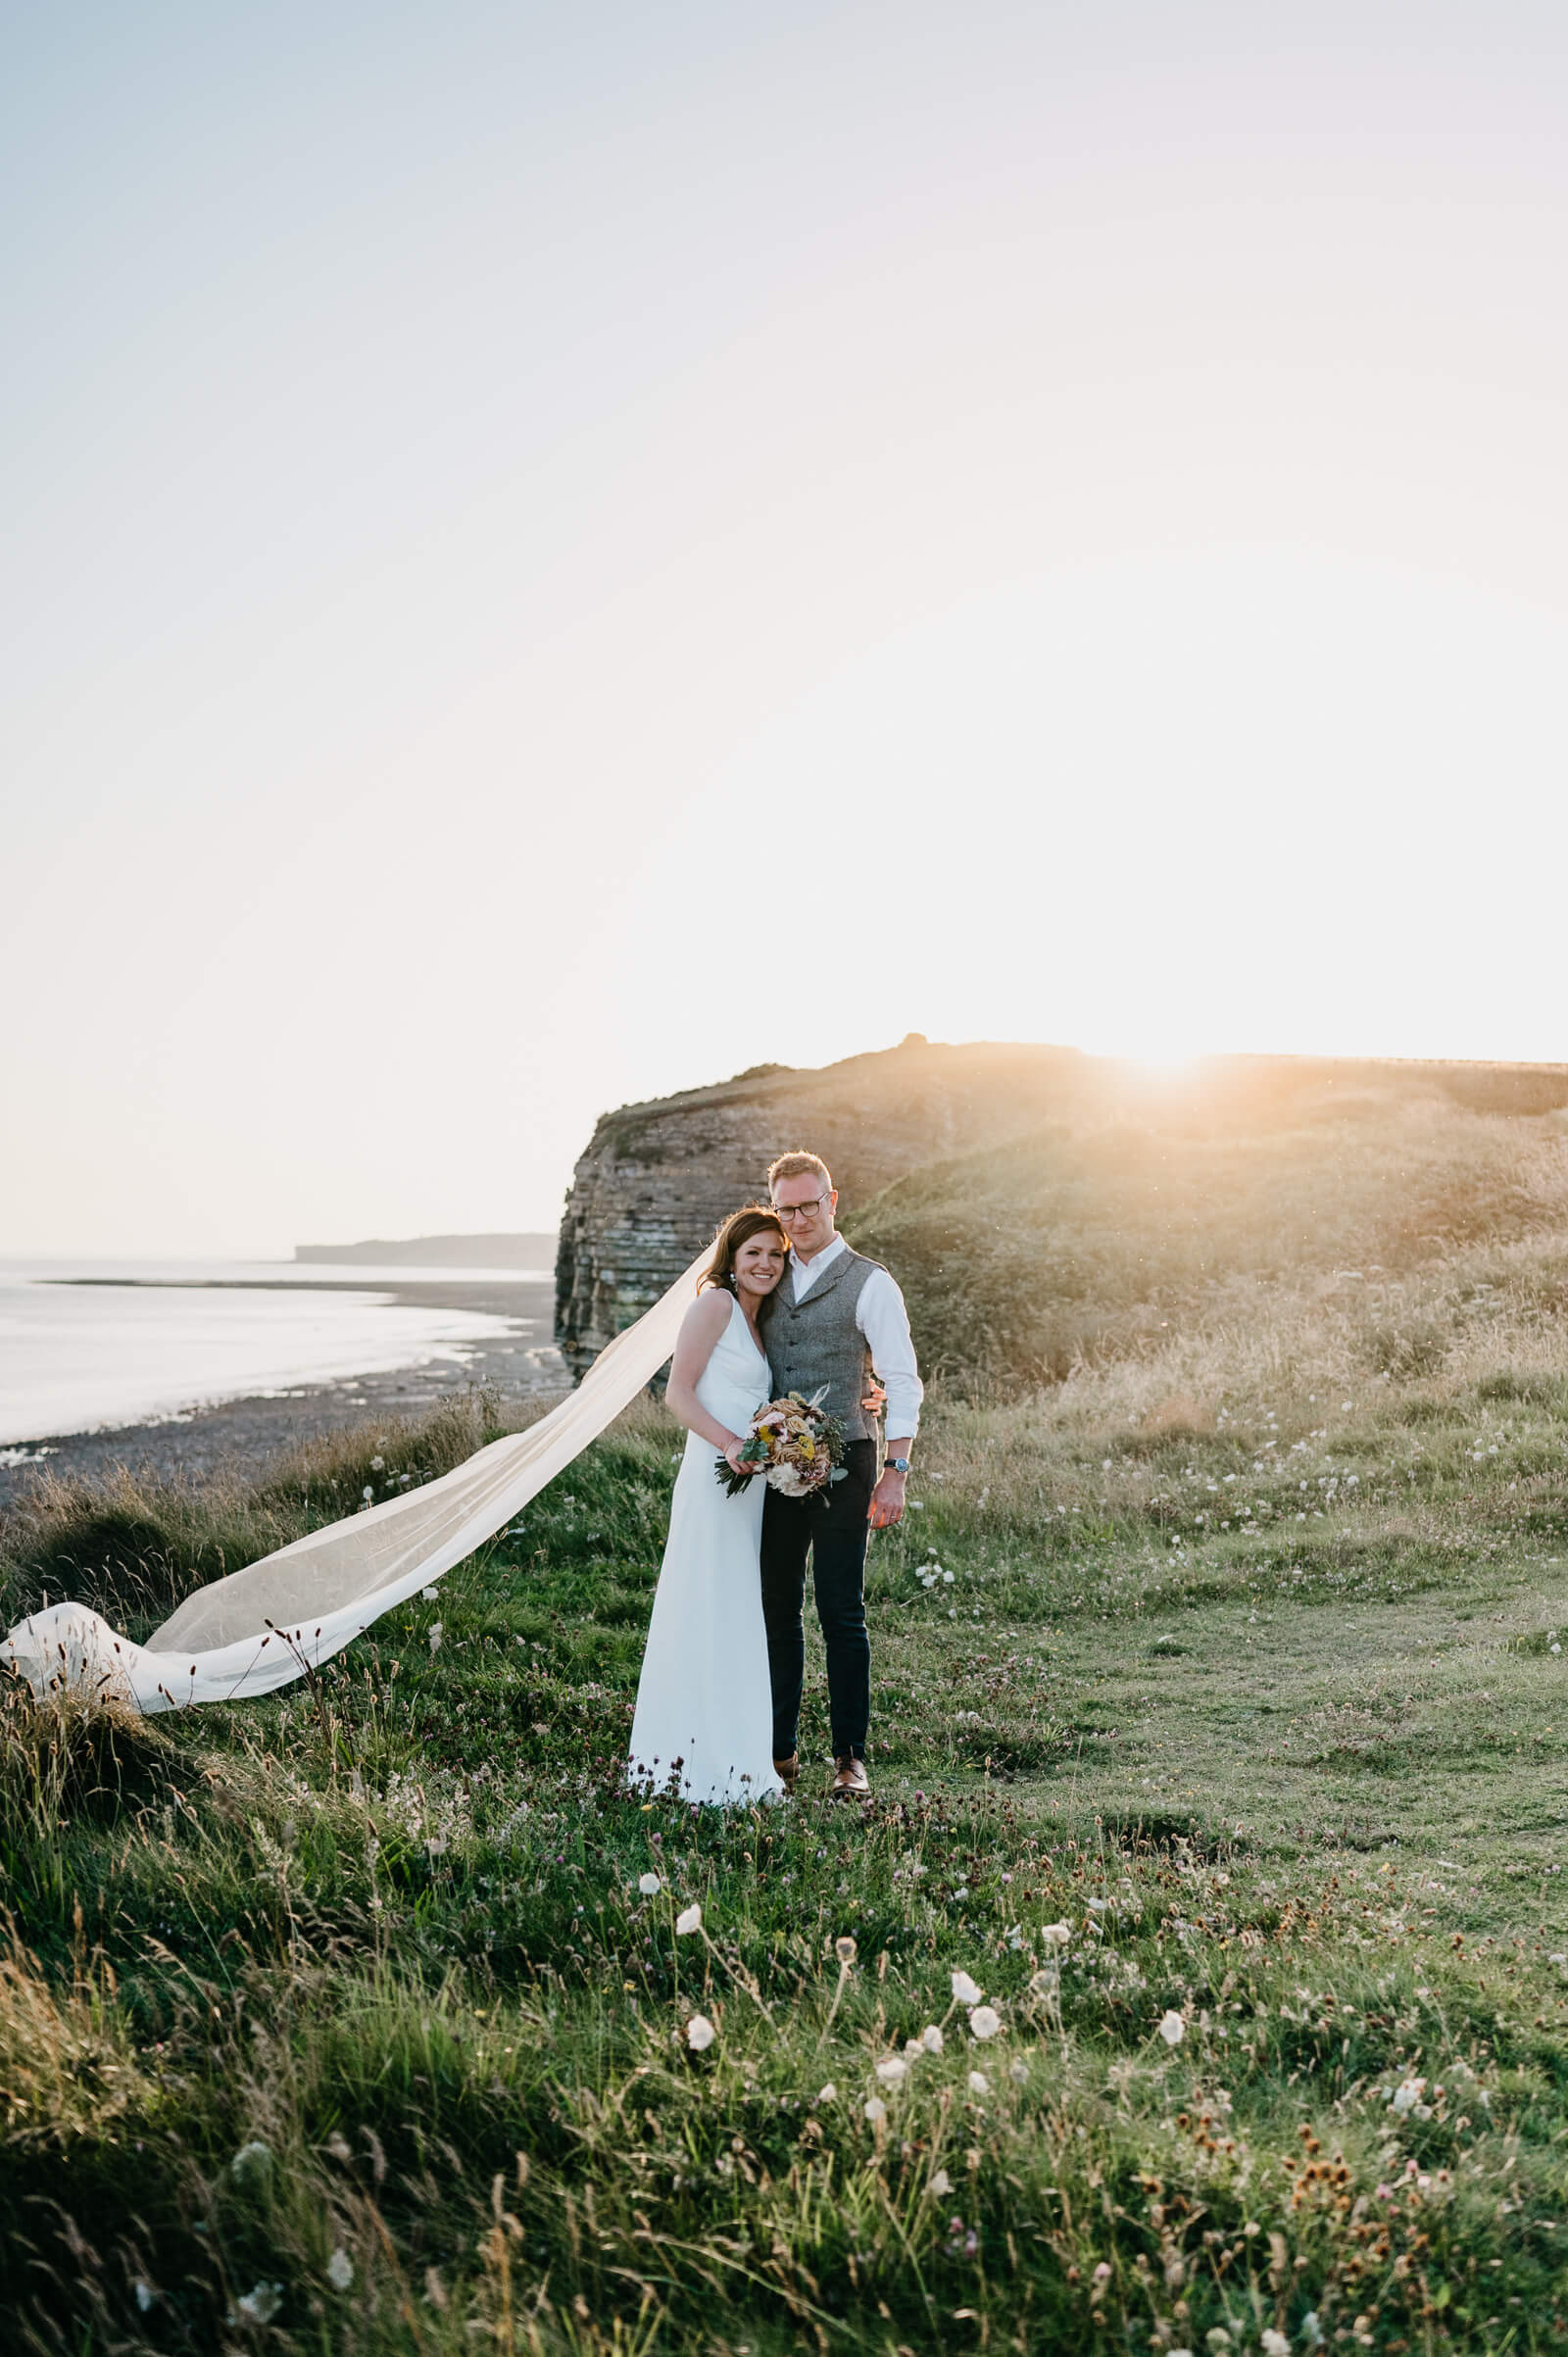 Rosedew Farm bride and groom pose at sunset looking west along the coastline towards Nash Point